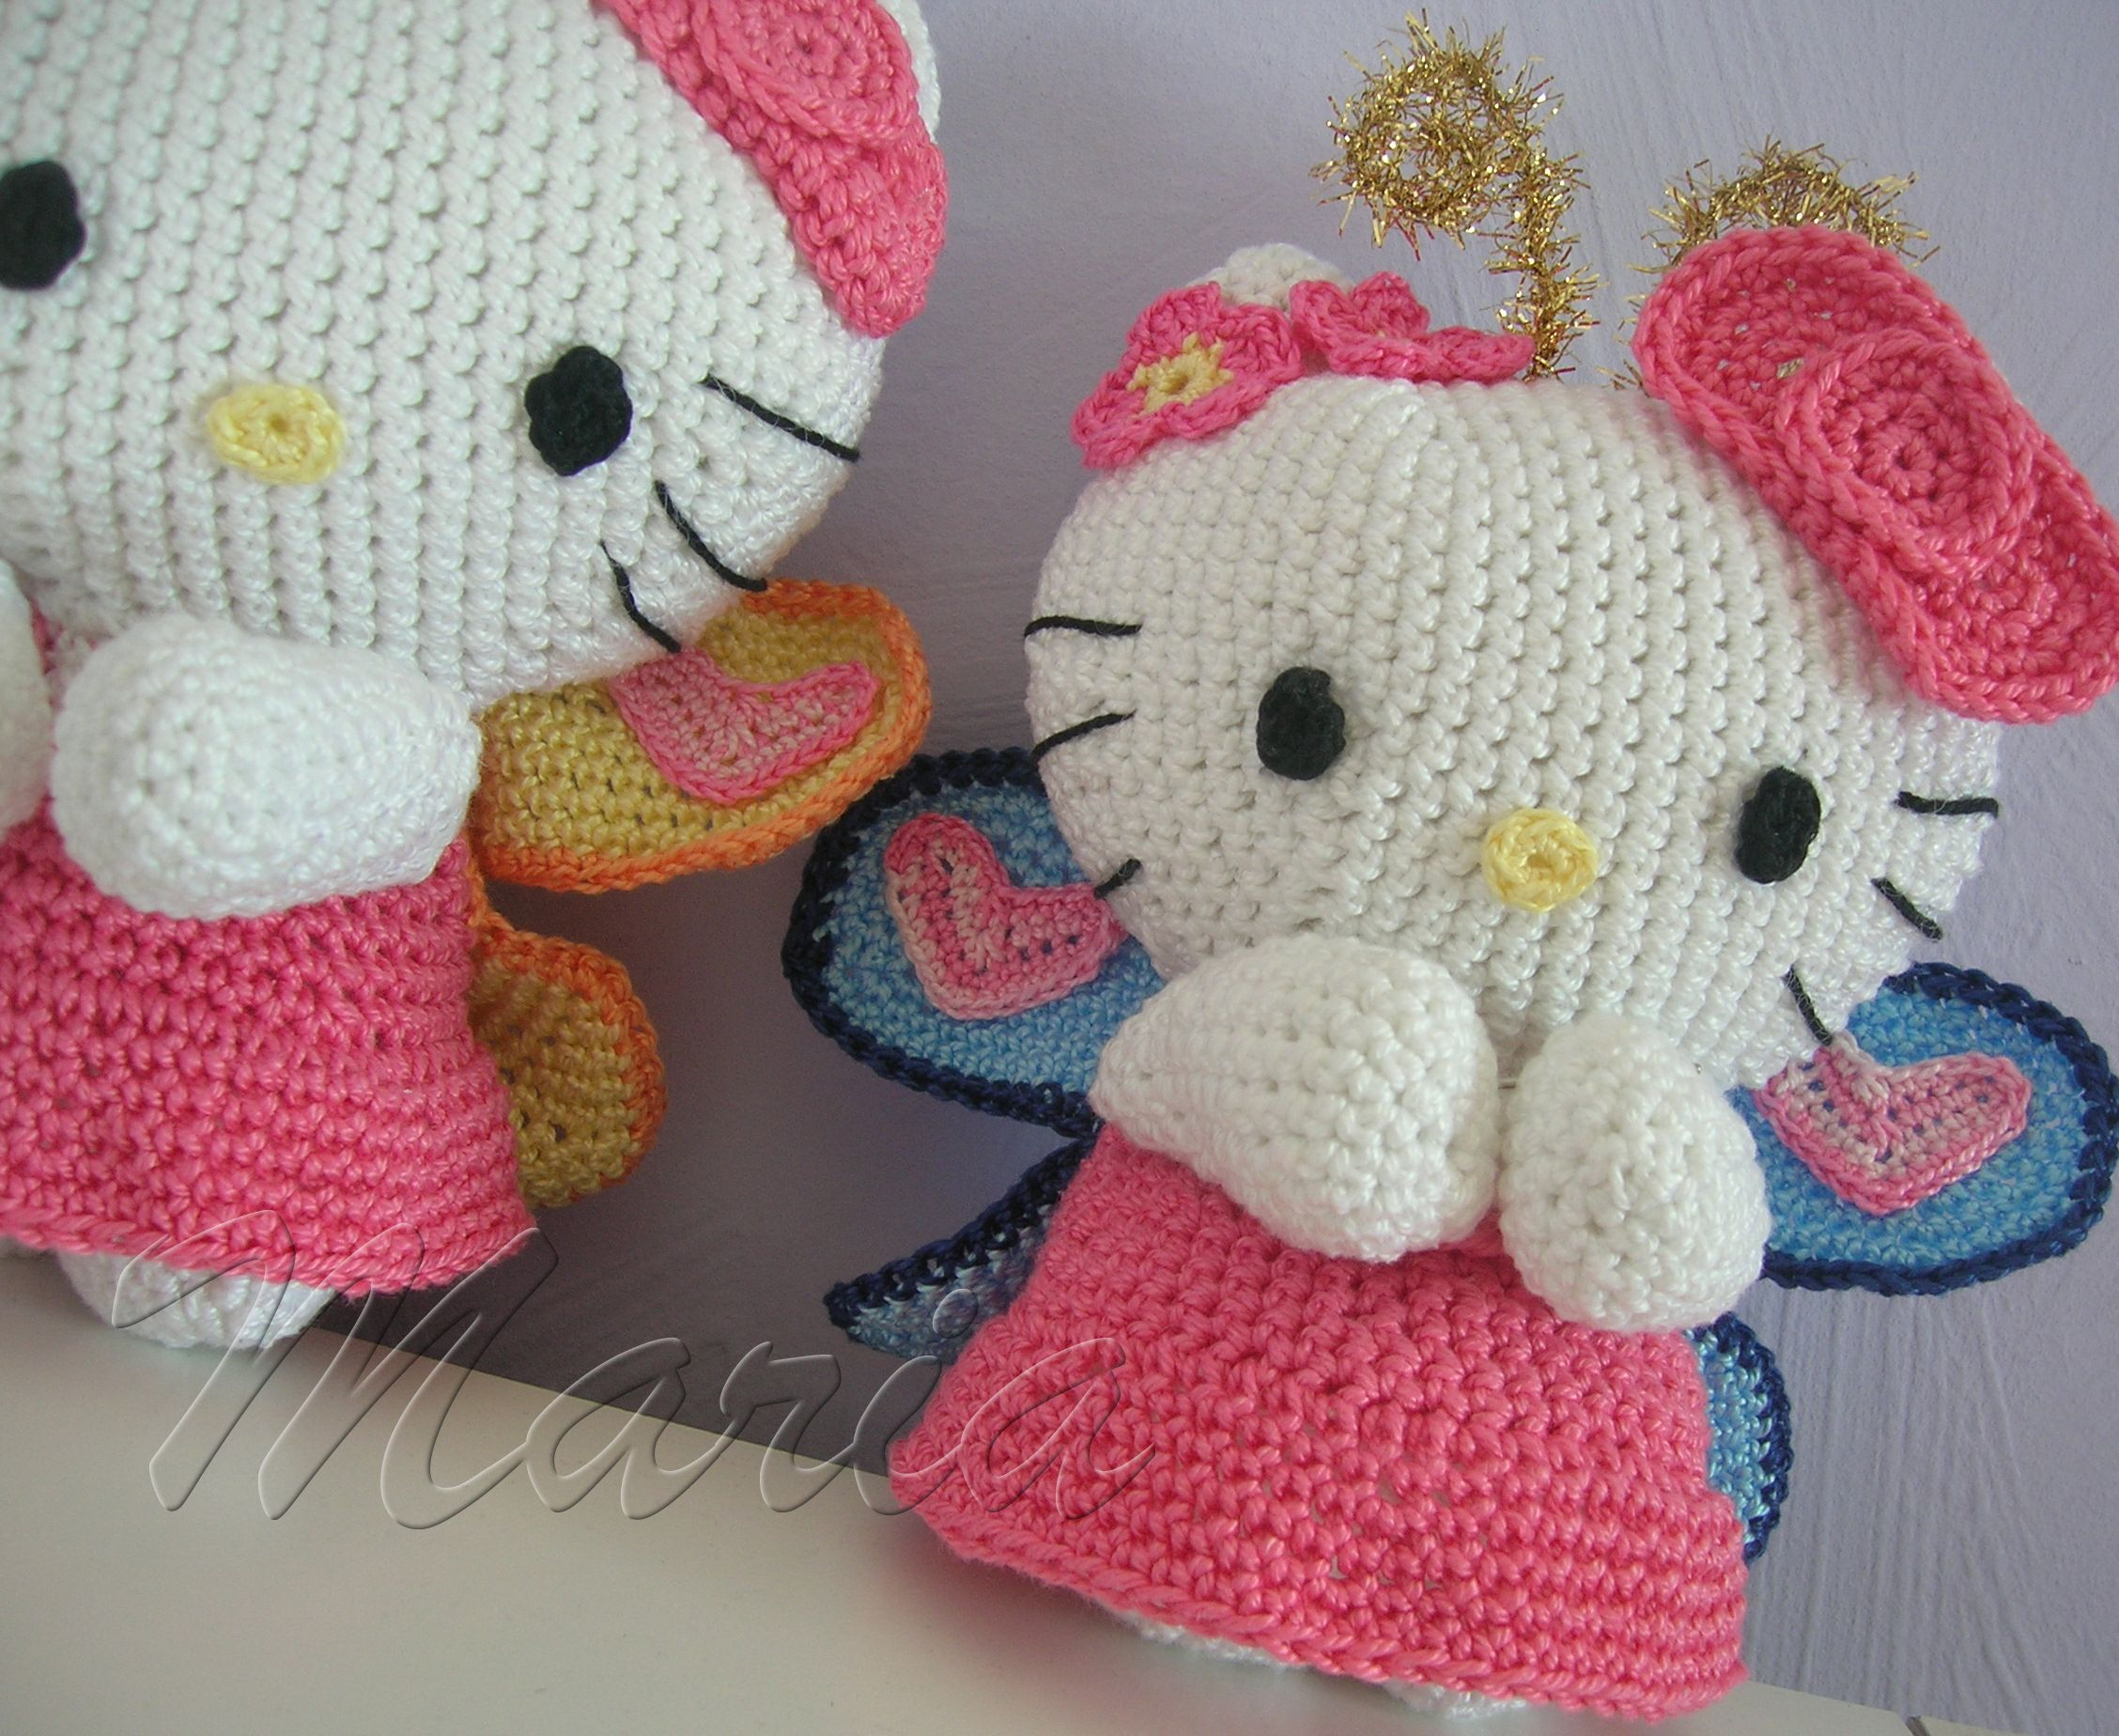 crochet kitty - Google Search